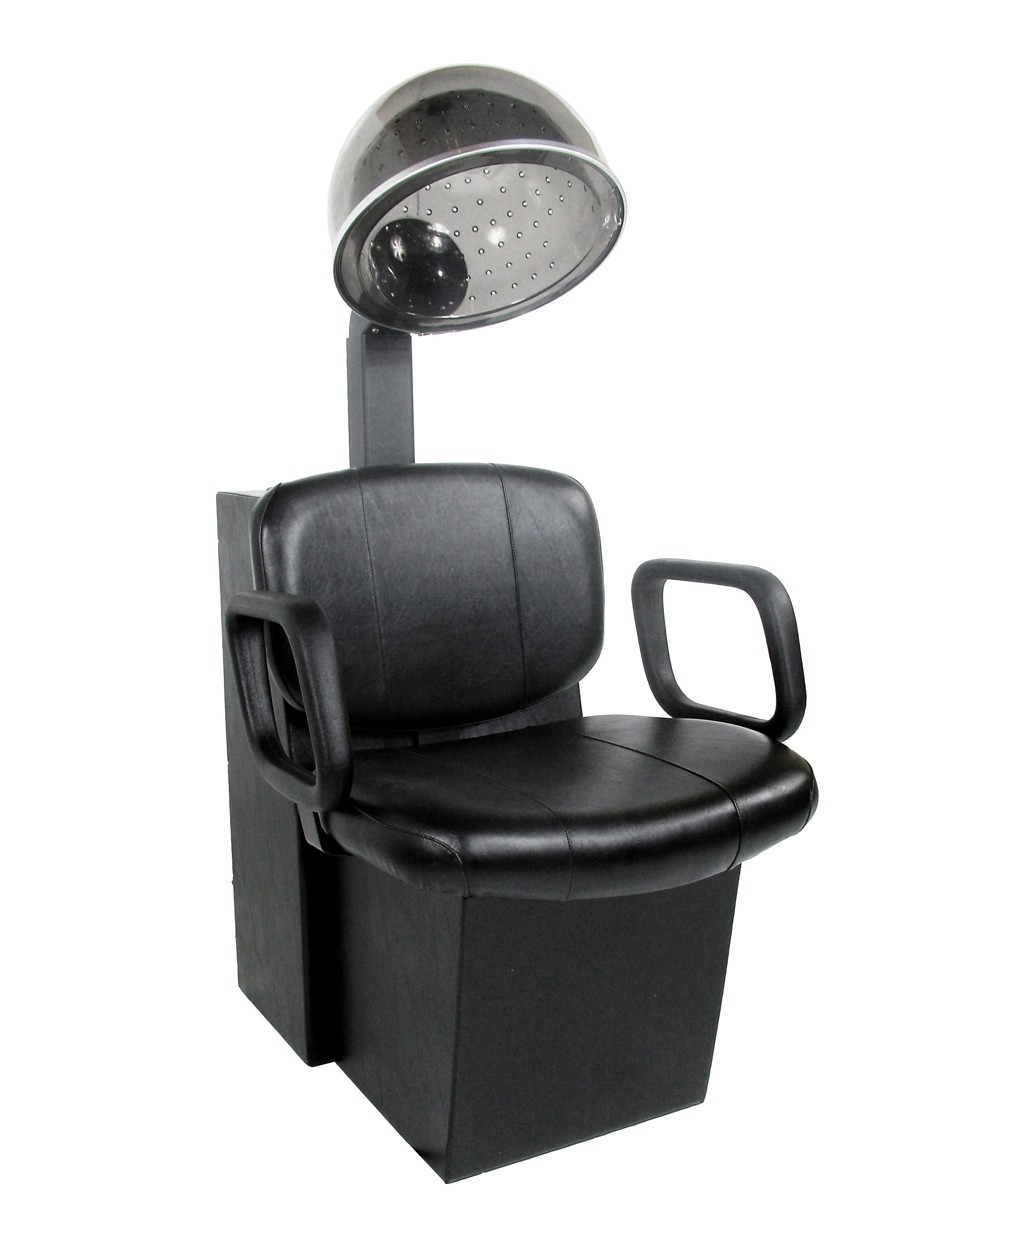 Pics for salon hair dryer chair for Buy rite salon